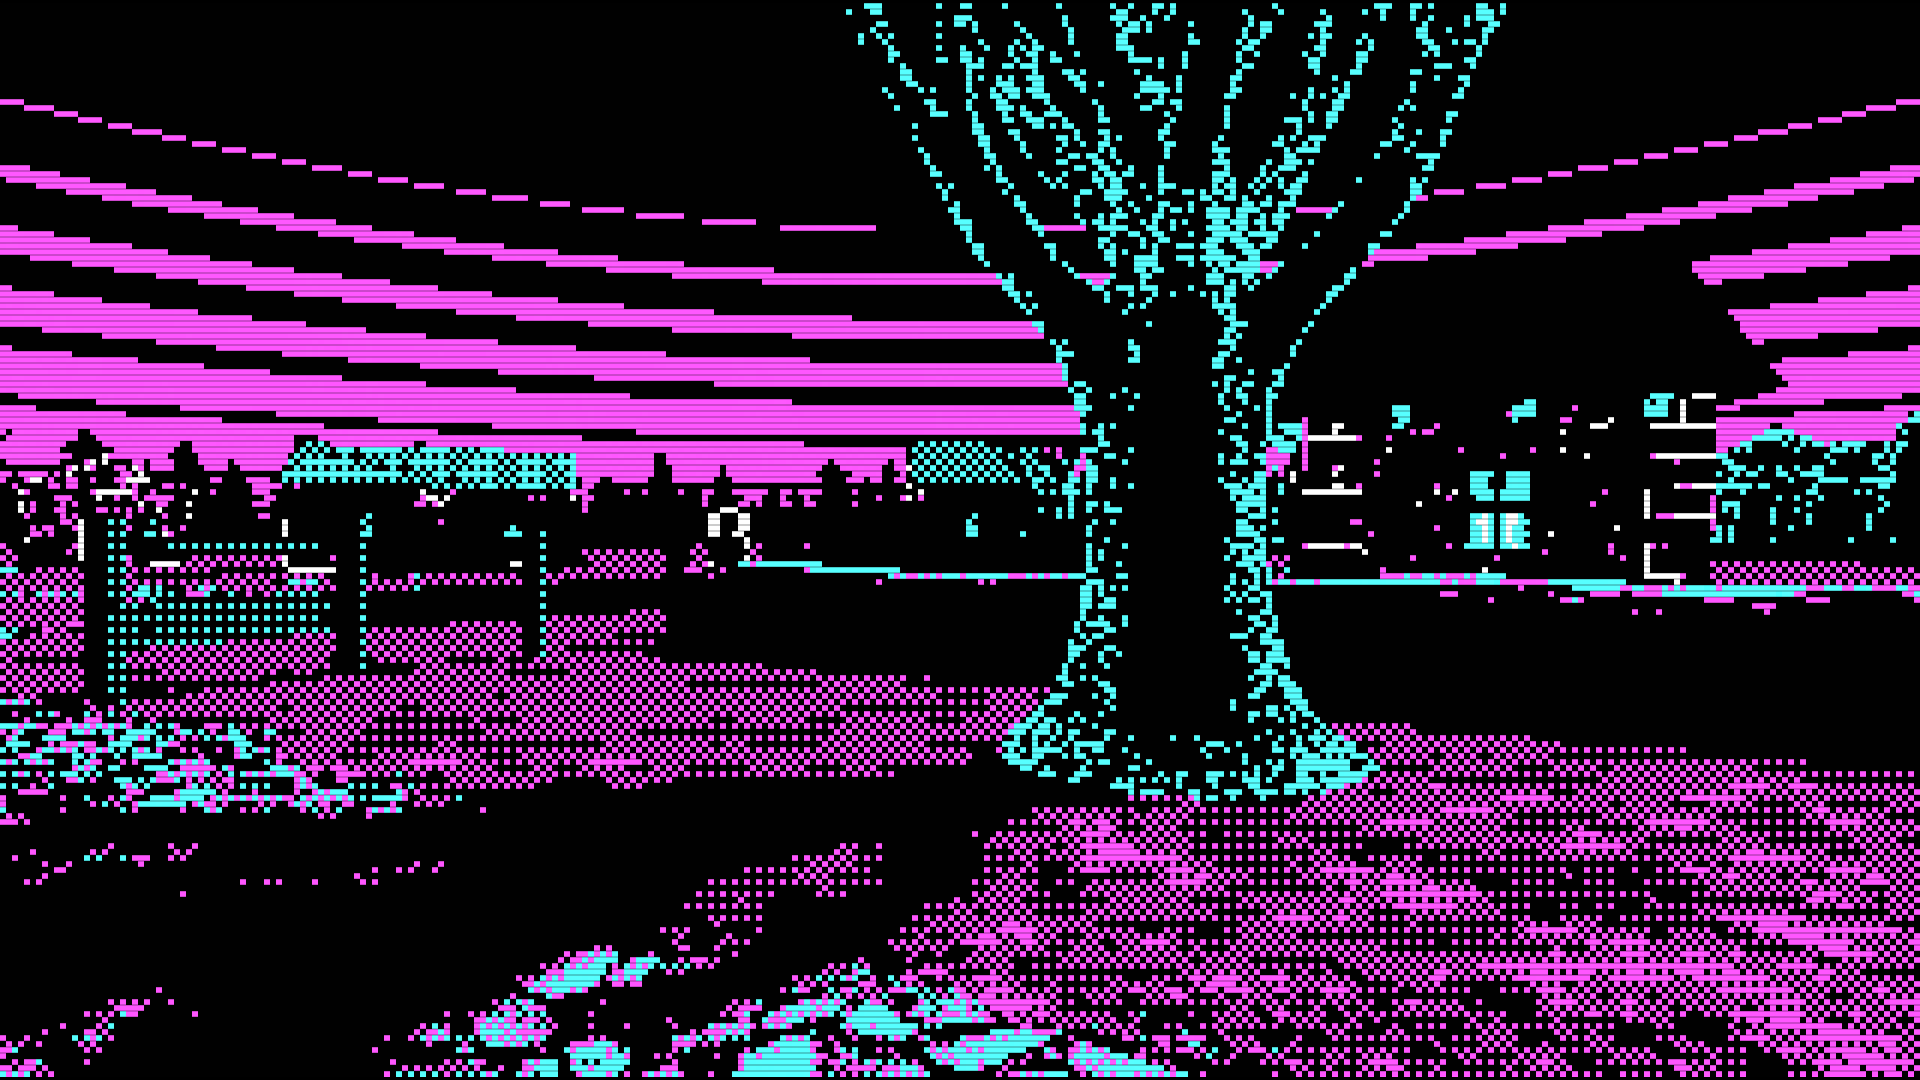 80s Aesthetic Wallpaper 107 images in Collection Page 1 1920x1080